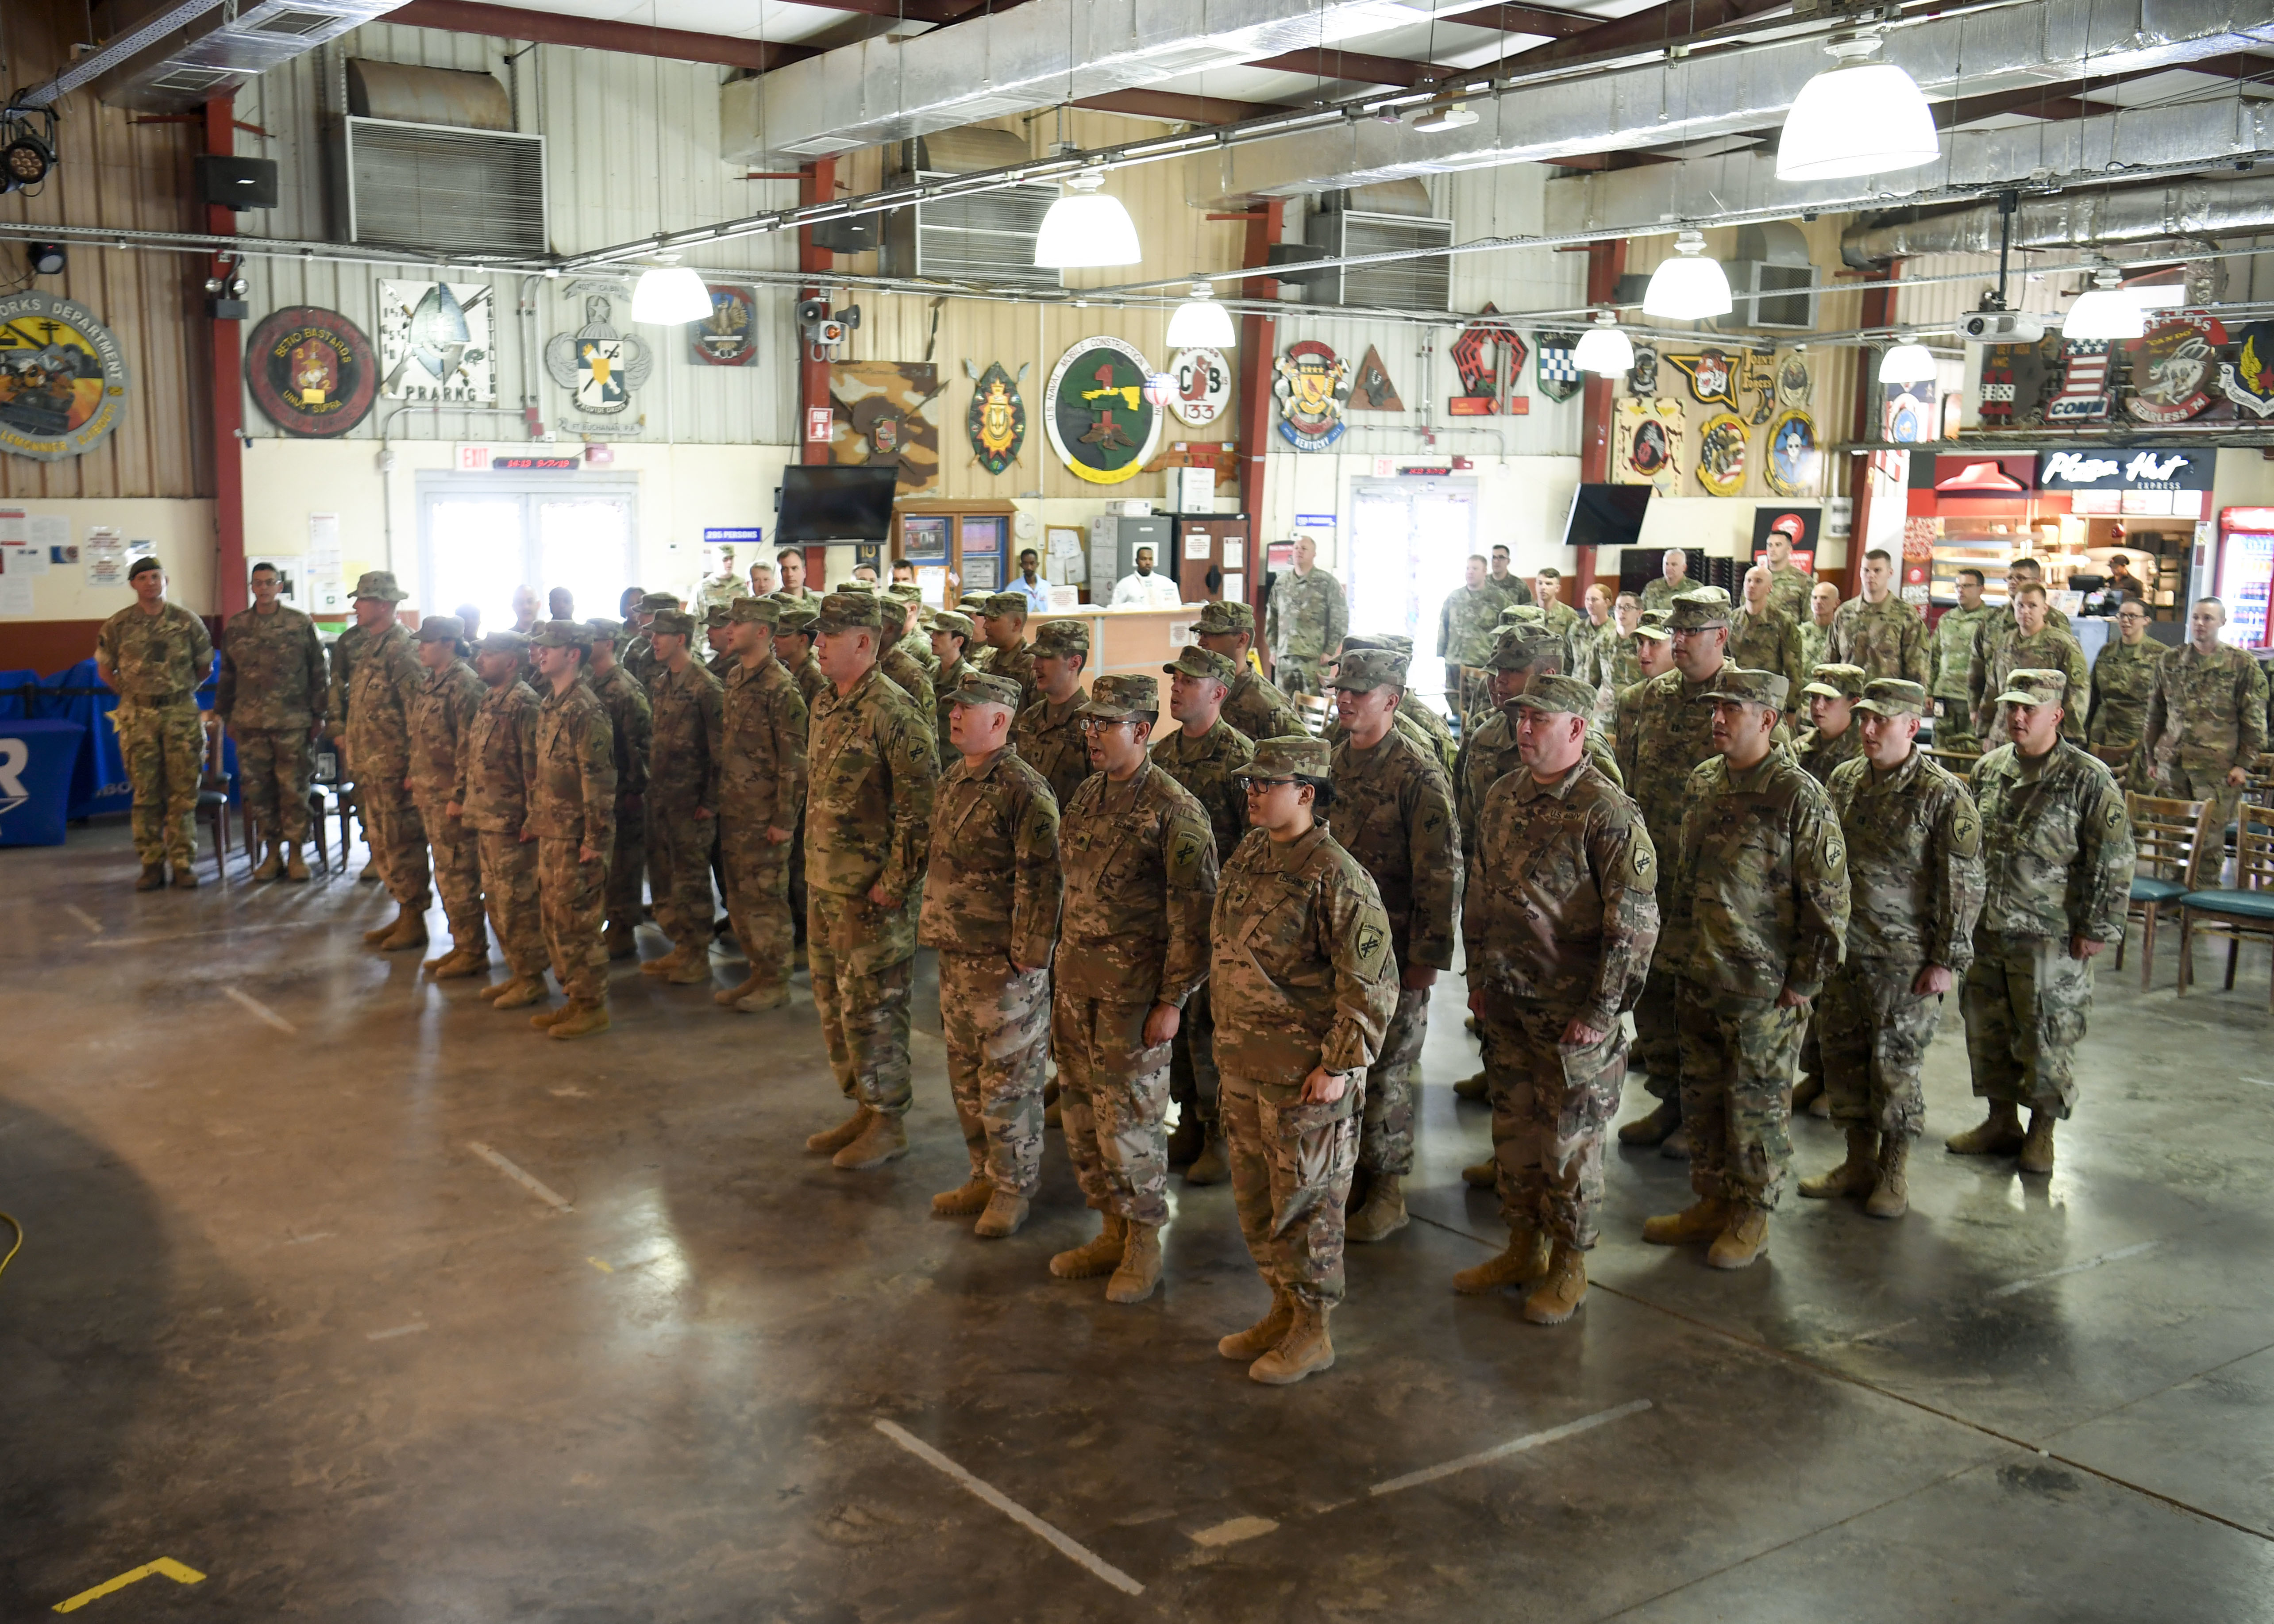 U.S. Army Soldiers from the 403d and 411th Civil Affairs (CA) Battalions, assigned to Combined Joint Task Force-Horn of Africa (CJTF-HOA), sing the U.S. Army song during a transfer of authority ceremony at Camp Lemonnier, Djibouti, July 9, 2019. The 411th CA Battalion assumed civil affairs responsibilities for CJTF-HOA from the 403rd CA Battalion. Civil Affairs Soldiers are the governance and foreign-culture experts of the Army. (U.S. Air Force photo by Staff Sgt. J.D. Strong II)